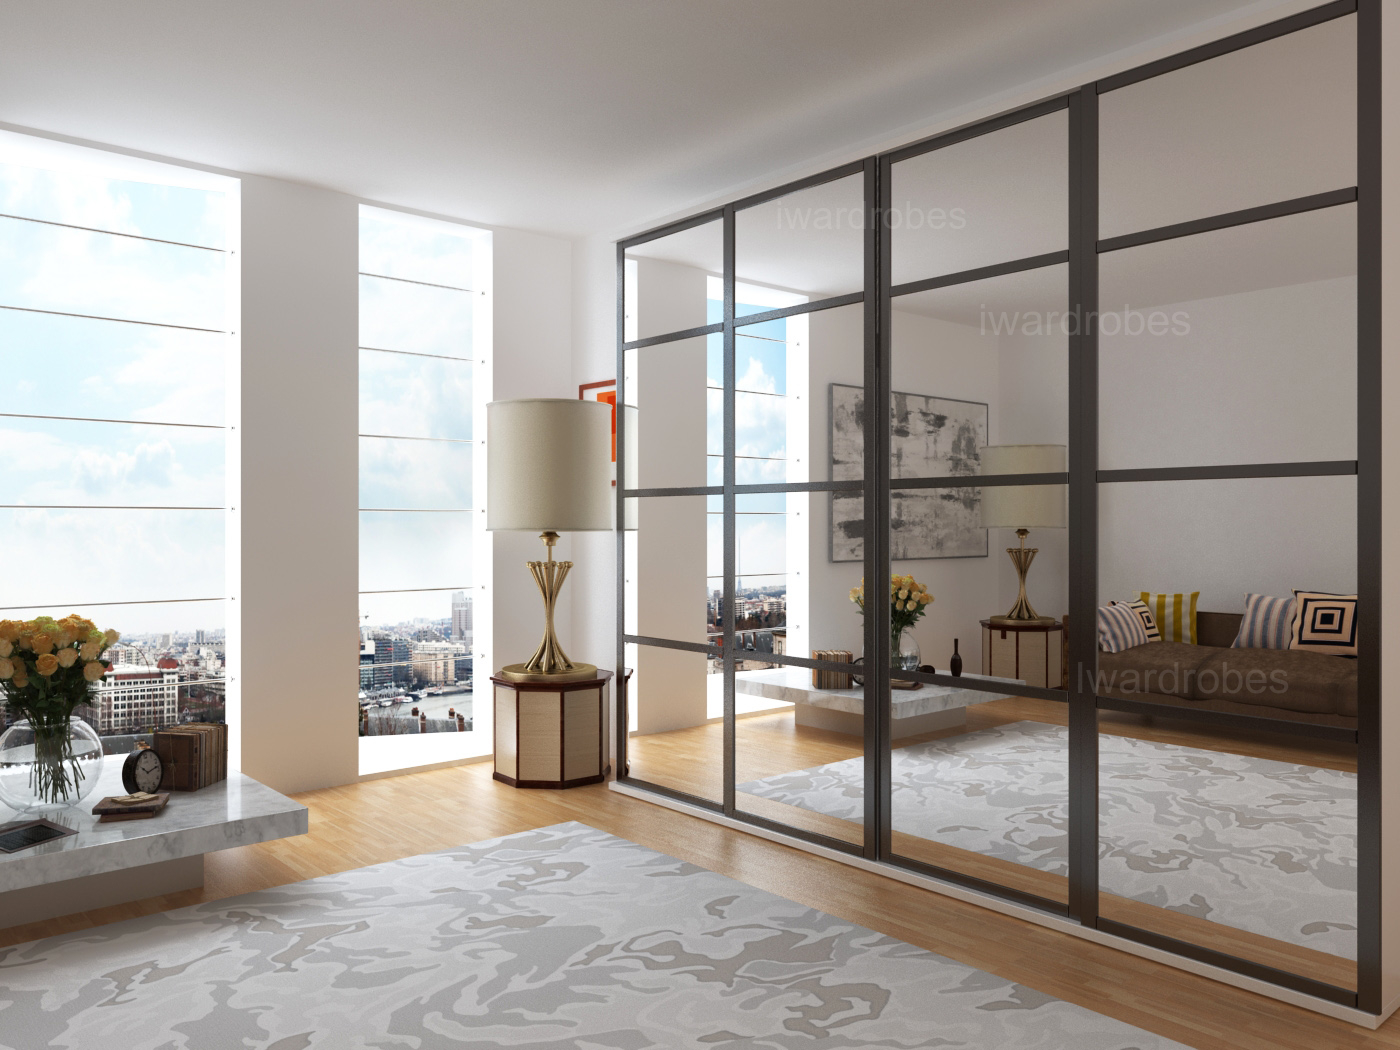 fitted wardrobes sliding doors contemporary sliding door wardrobes iwardrobes modern mirrored sliding door  fitted wardrobe vtopaller fbwkjdq